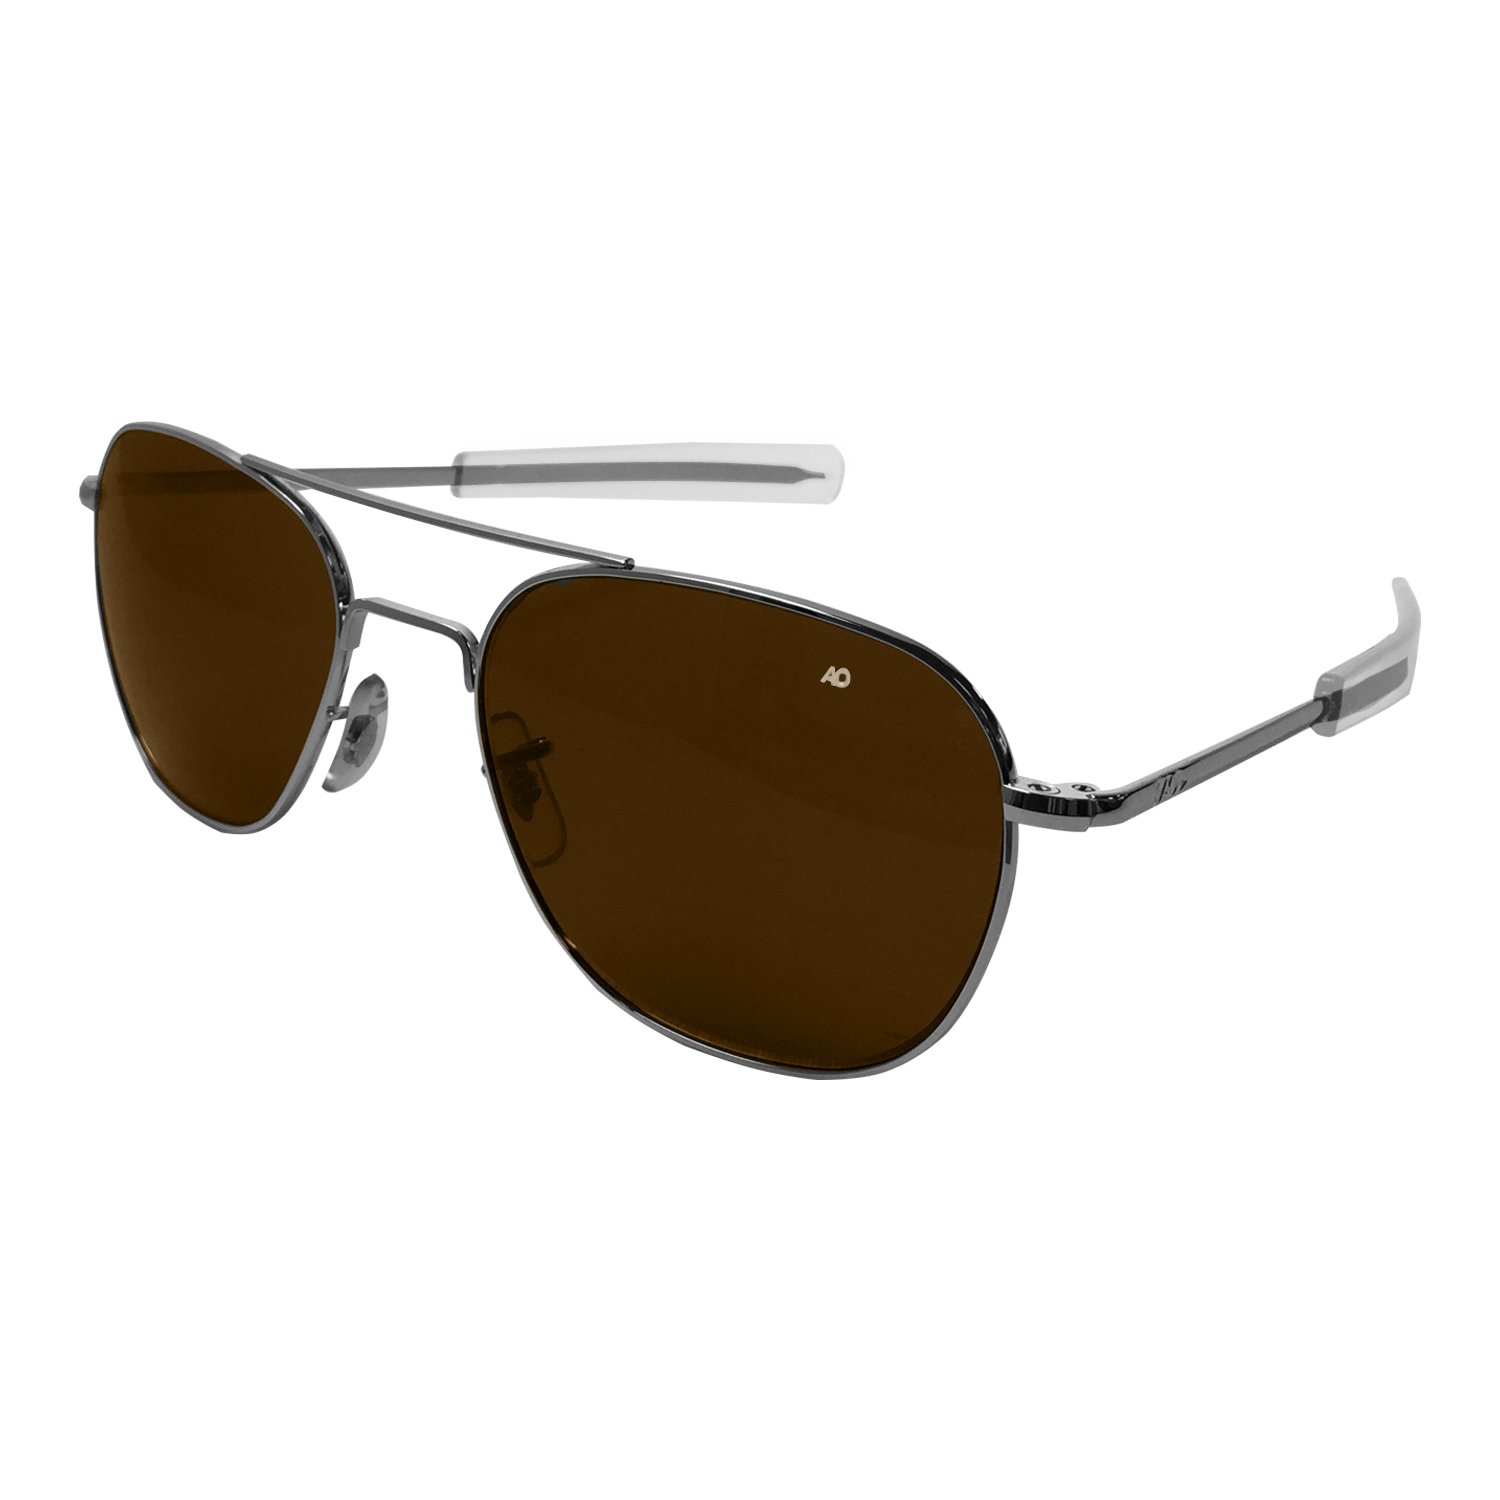 AO Eyewear American Optical - Original Pilot Aviator Sunglasses with Bayonet Temple and Silver Frame, Cosmetan Brown Glass Lens